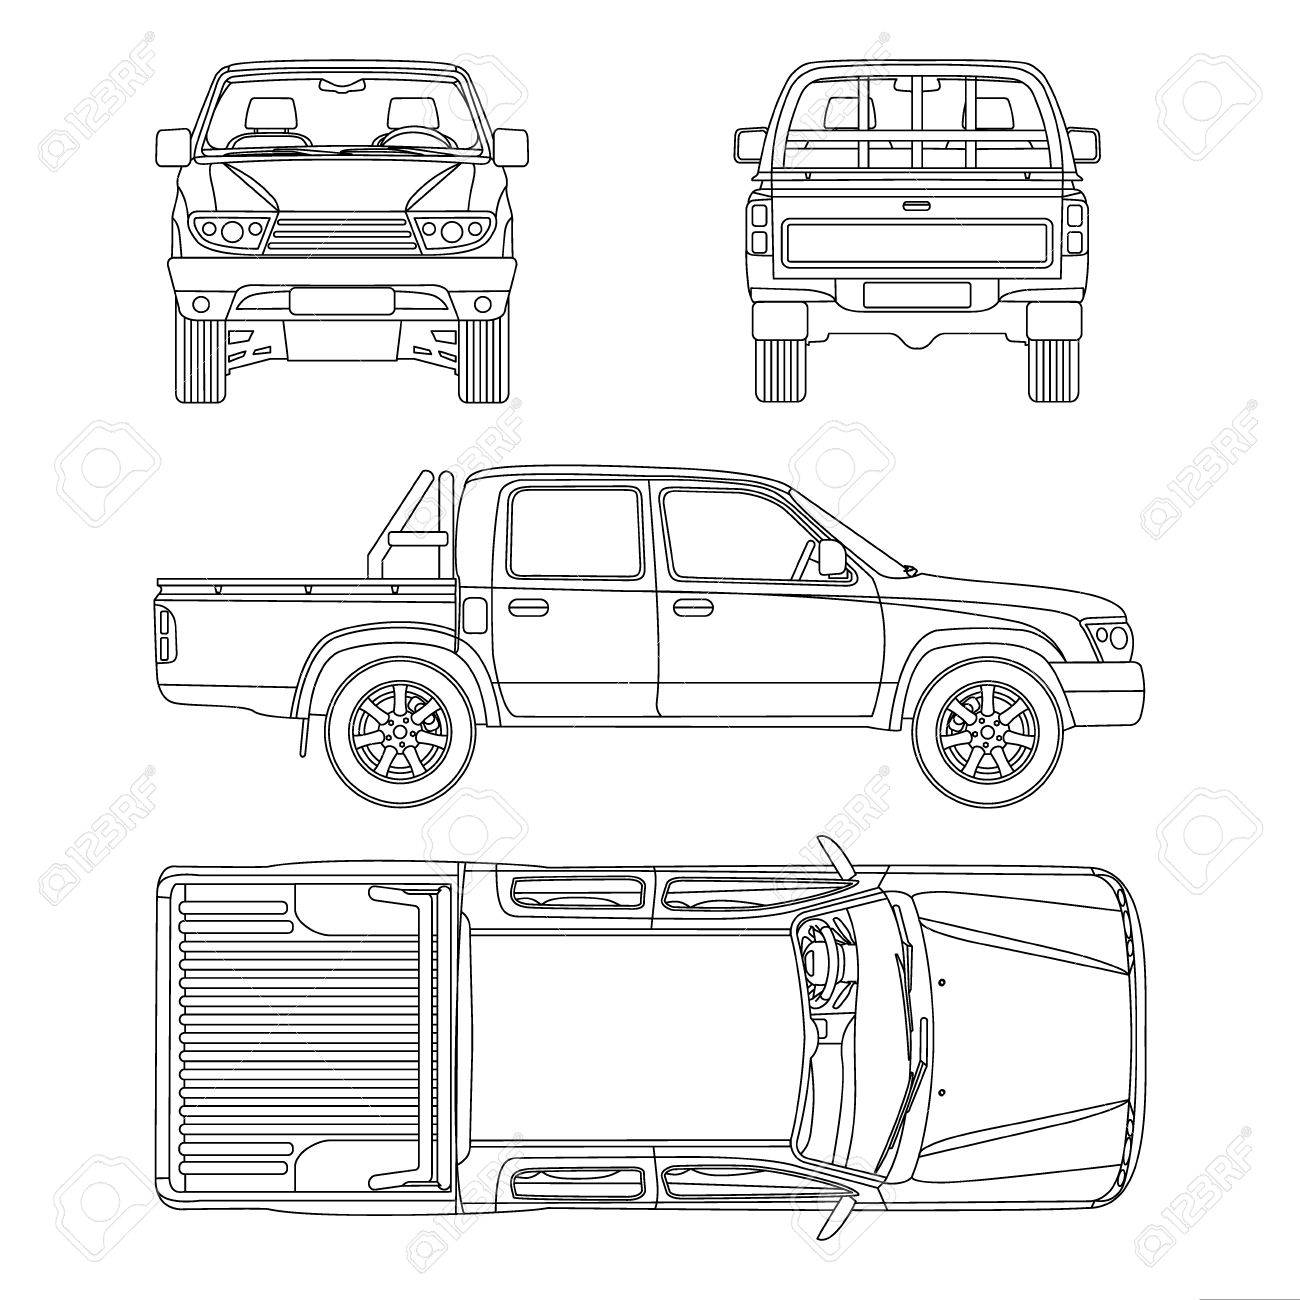 Pickup Truck Illustration Blueprint Royalty Free Cliparts, Vectors ...